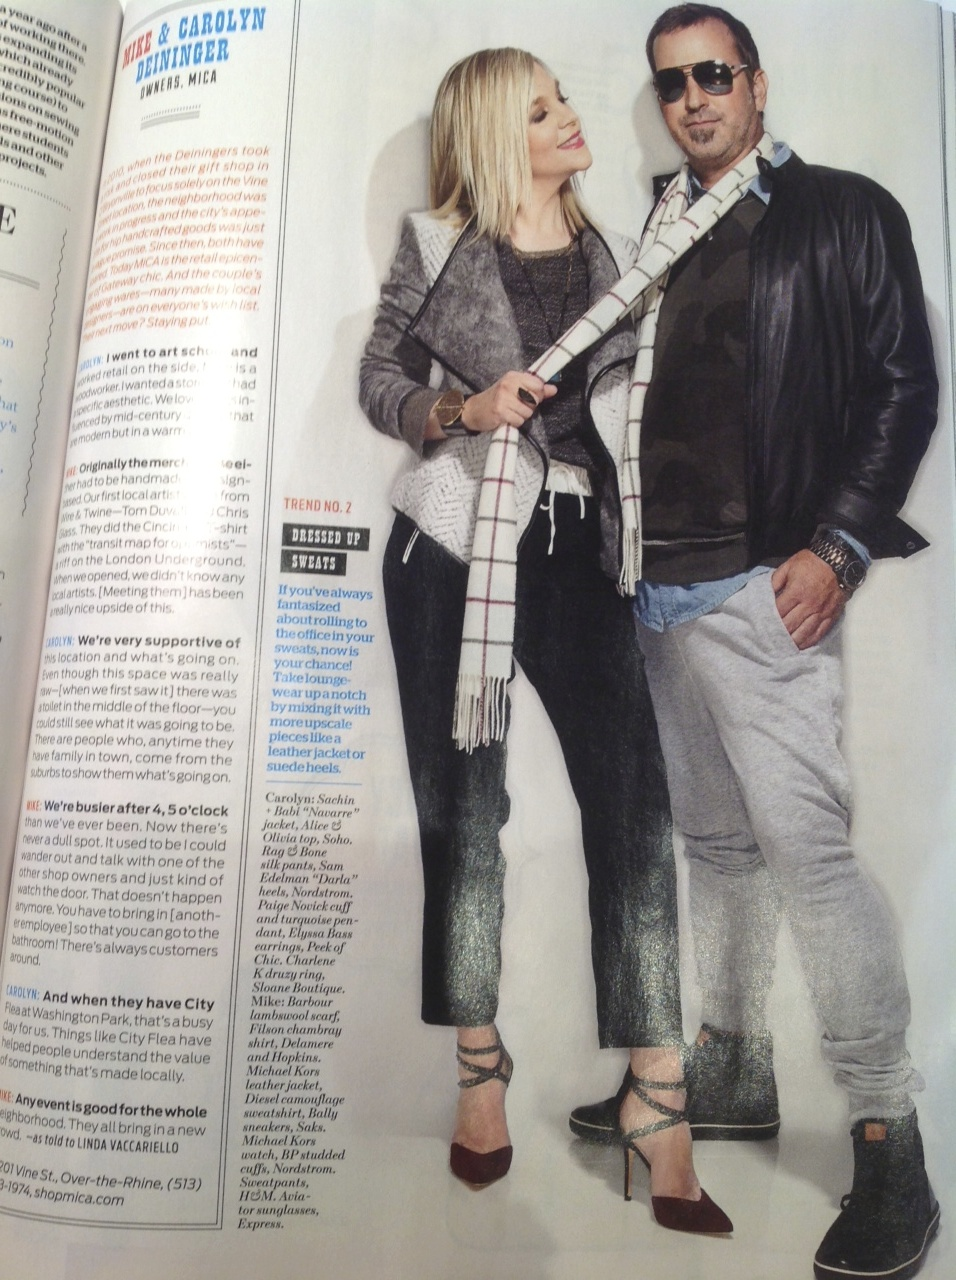 """Carolyn & Mike as photographed for Cincinnati Magazine's """"Best Little Shops"""" issue, Sept. 2014"""